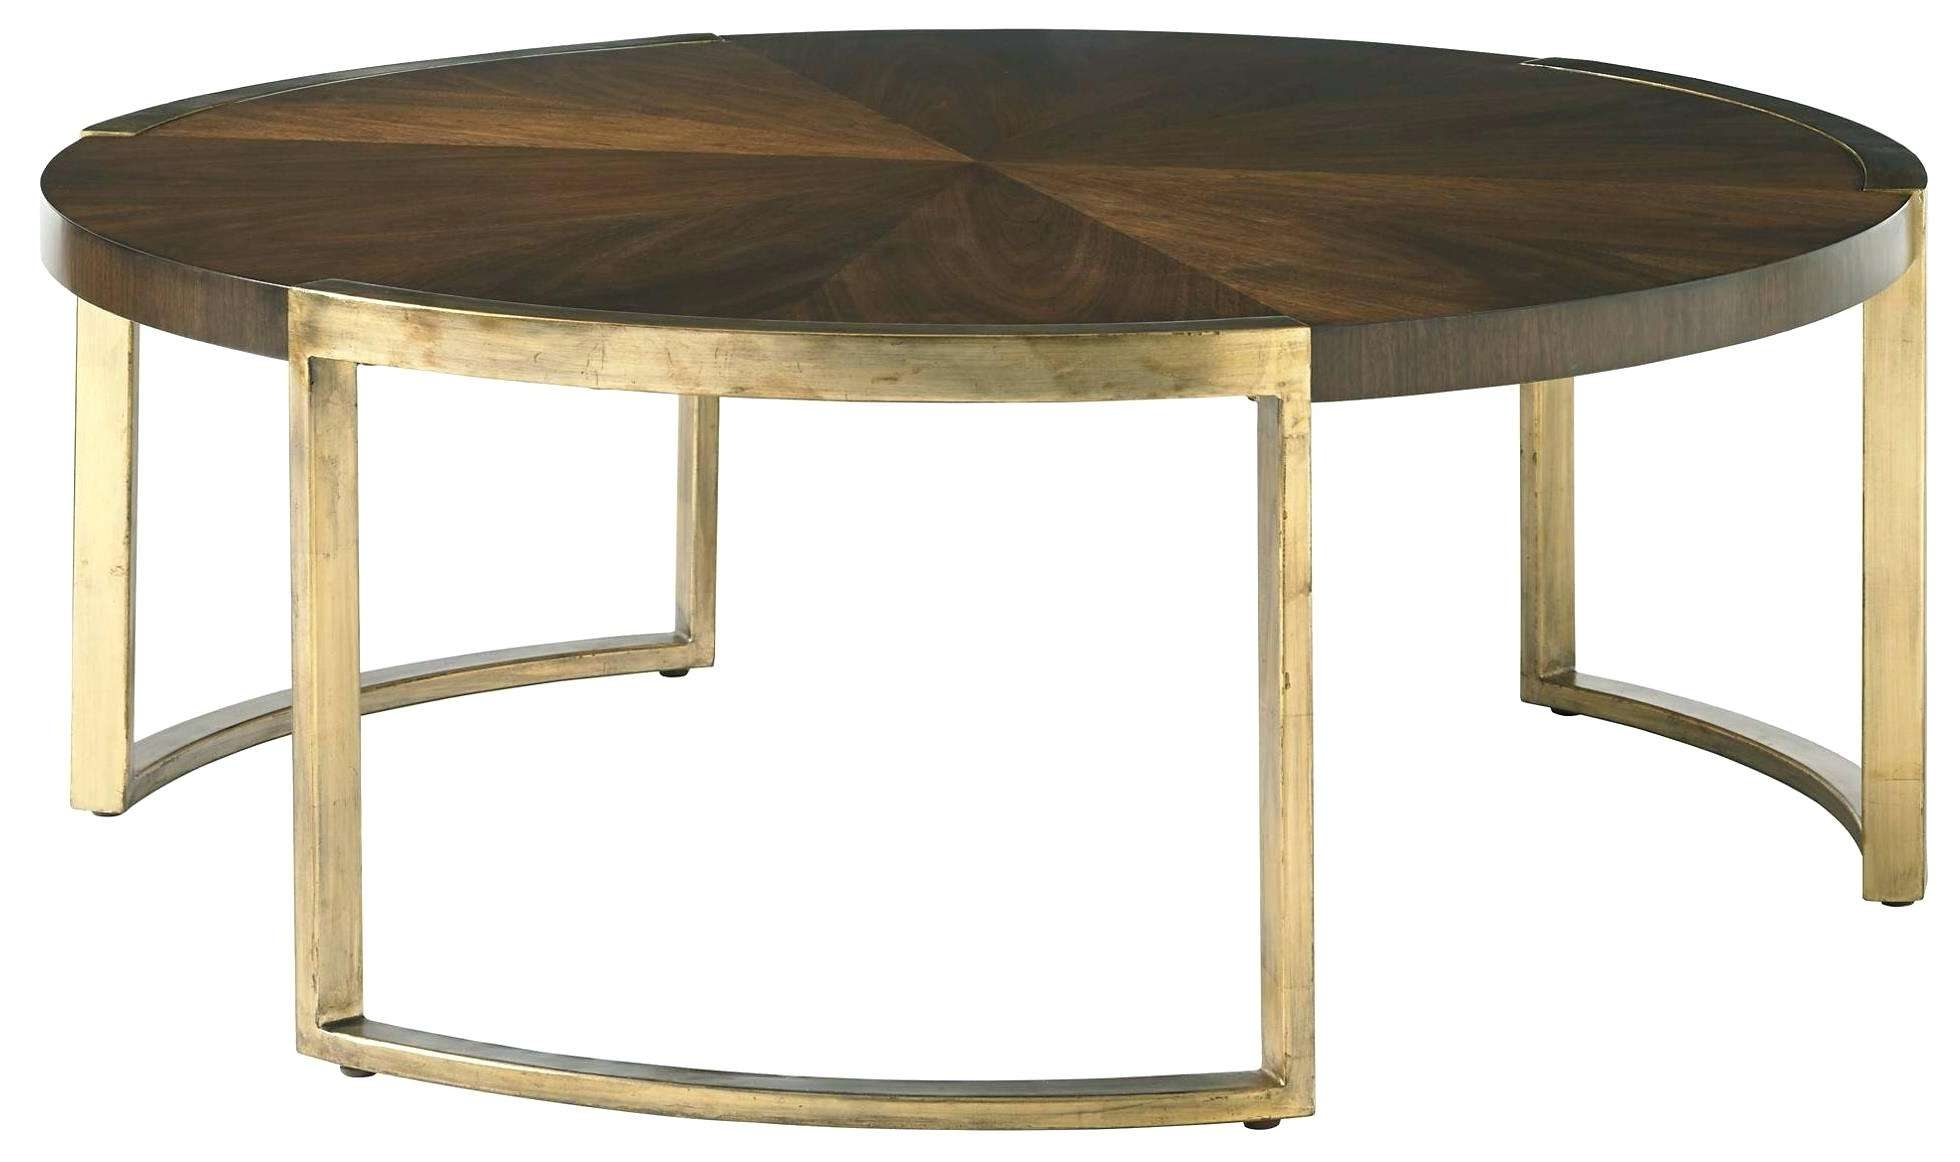 Most Recent Oval White Coffee Tables In Round White Coffee Tables – Fieldofscreams (View 6 of 20)